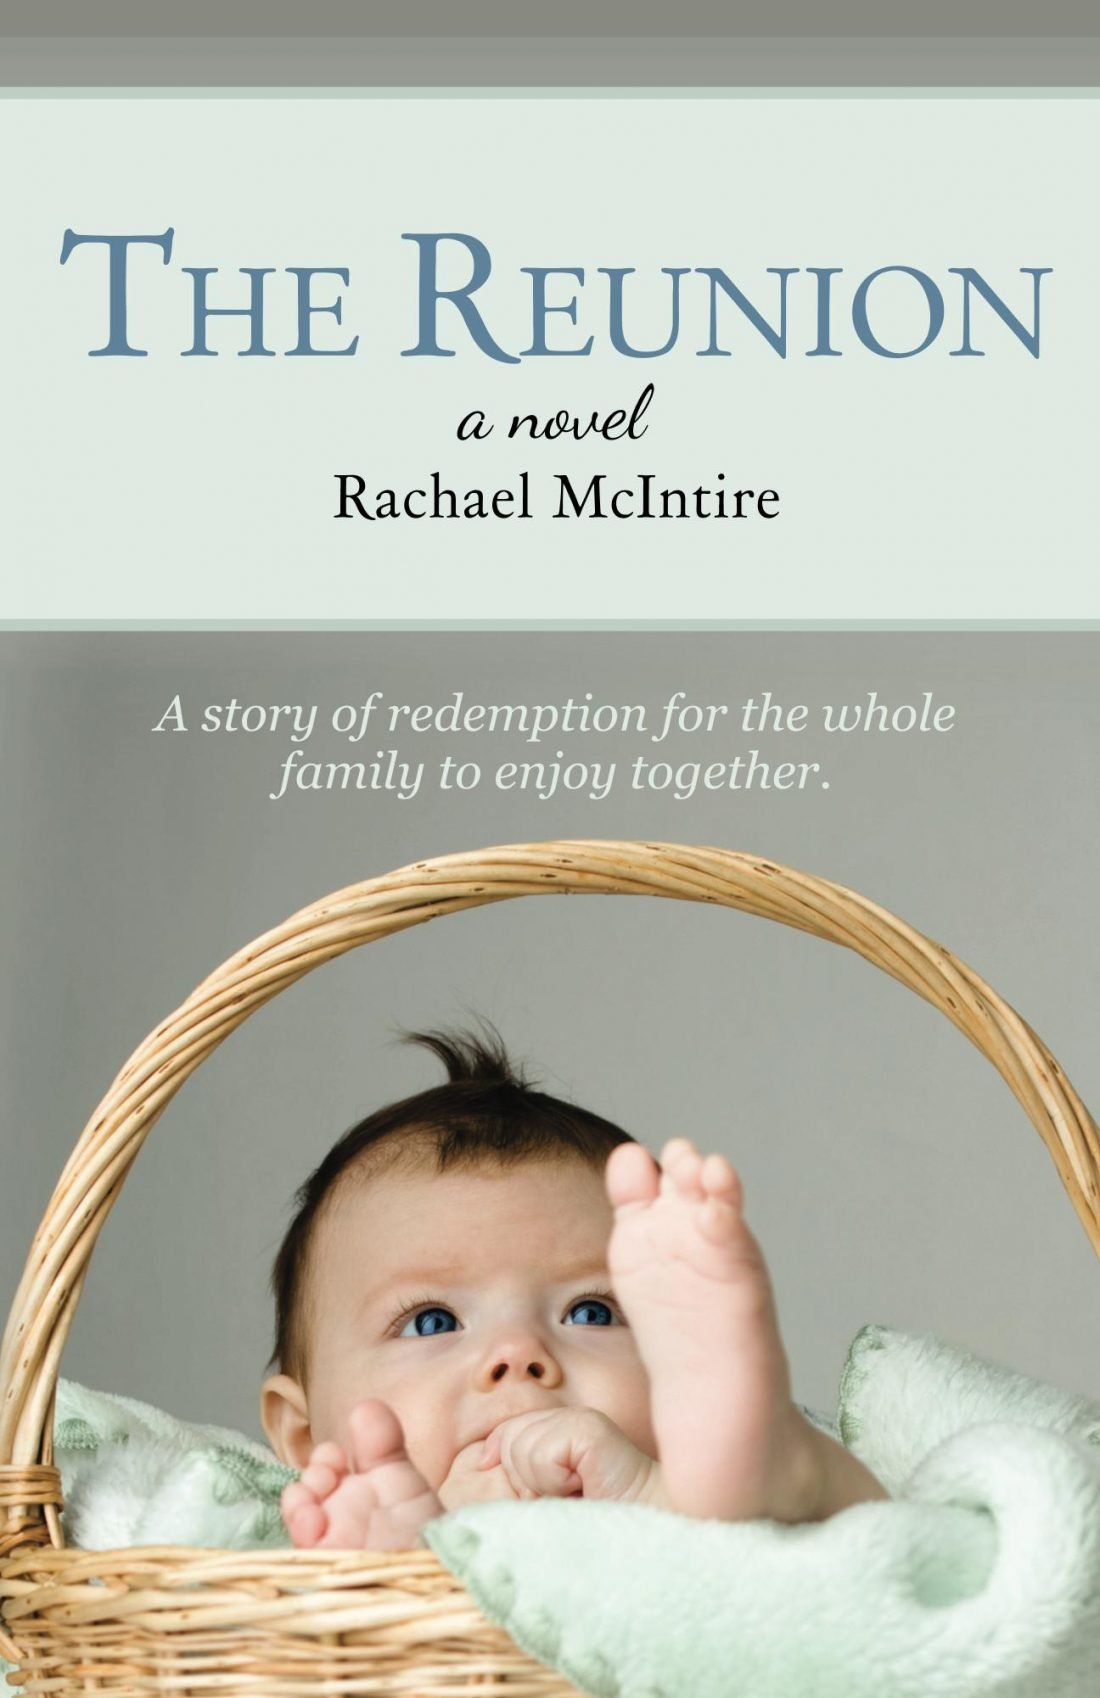 Review/Giveaway of The Reunion by Rachael McIntire